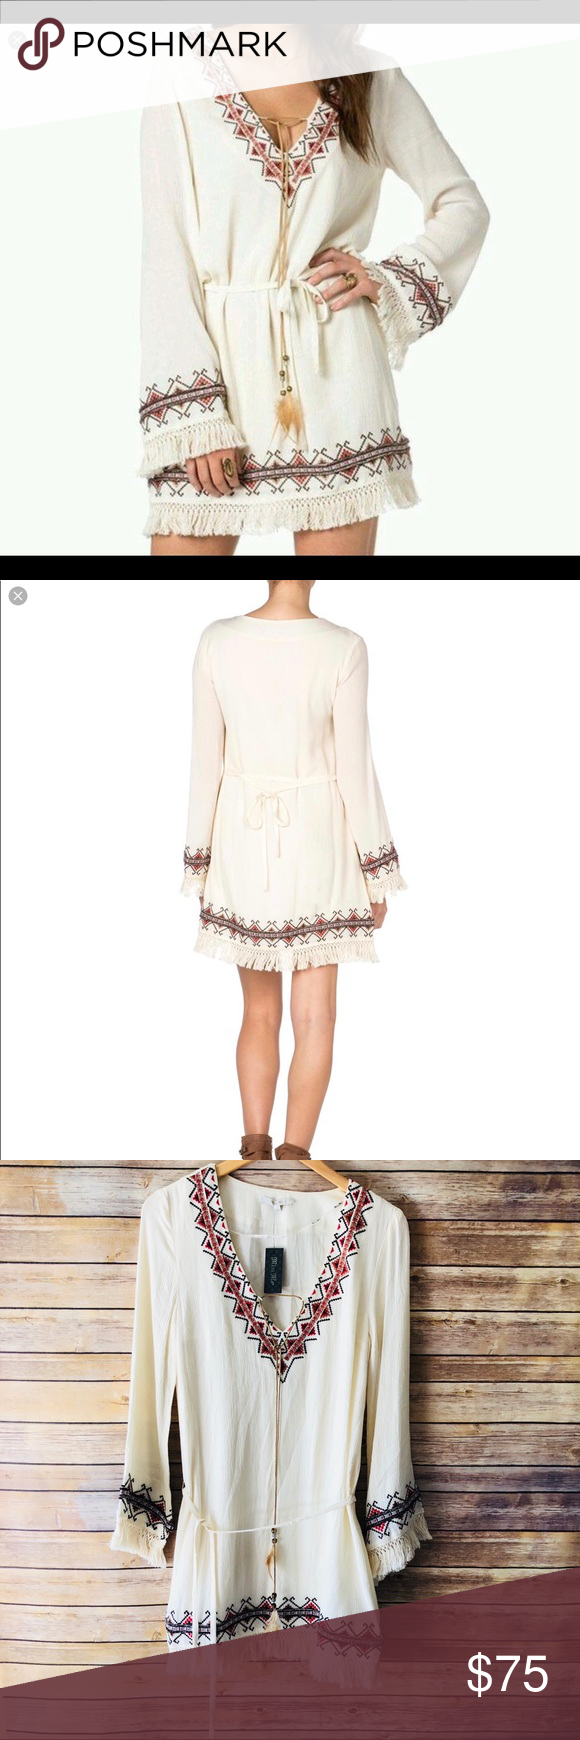 7ce61a7f167b Miss Me Woven Fringe Dress Oh so Boho! Perfect festival dress! Beautifully  embroidered